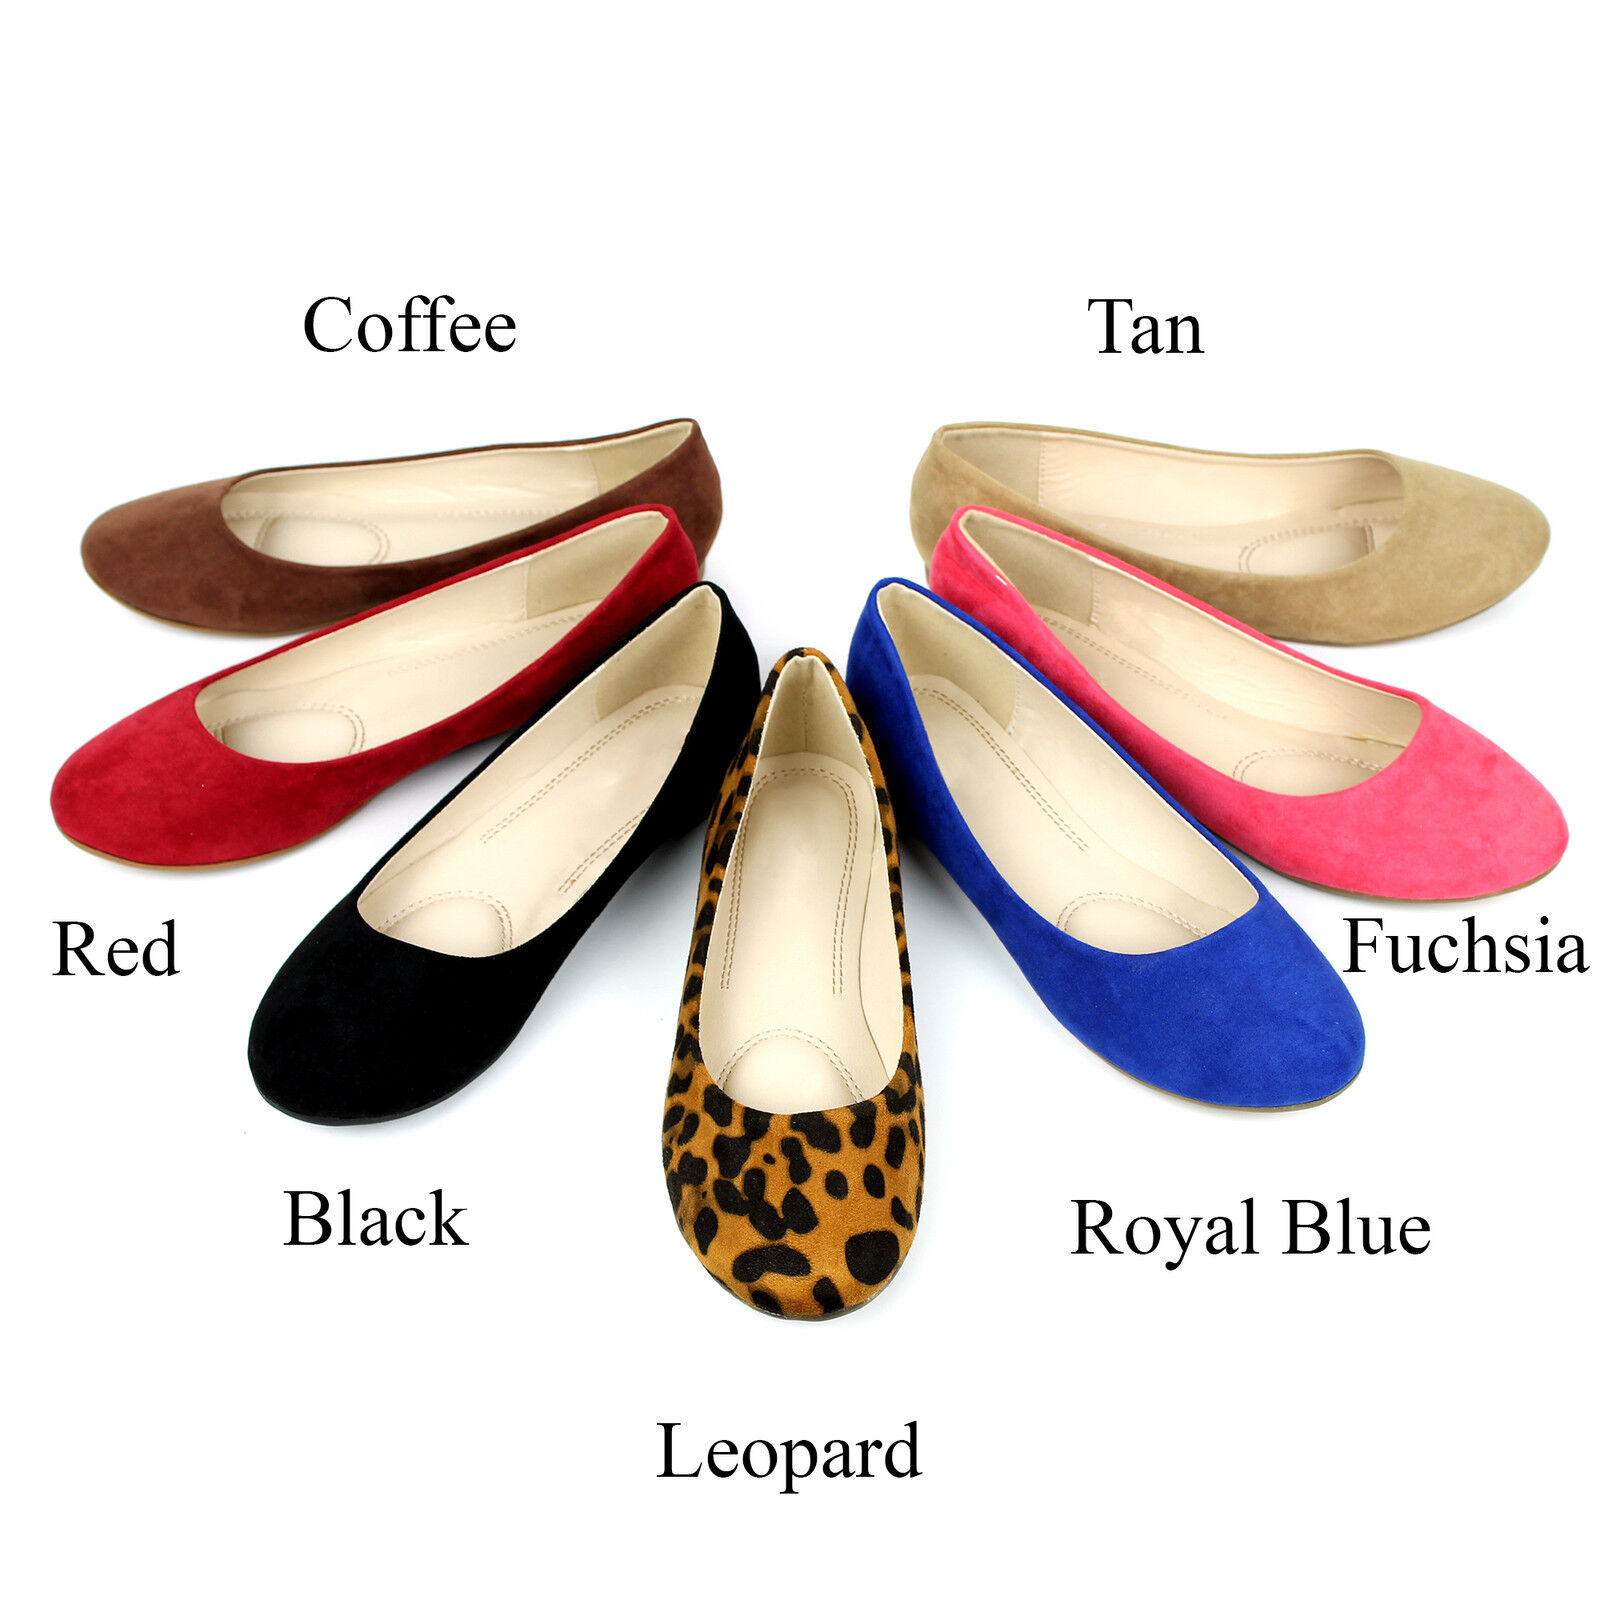 [NEW] Women's Flats Cute Casual Comfort Slip On Round Toe Ballet Flats Shoes